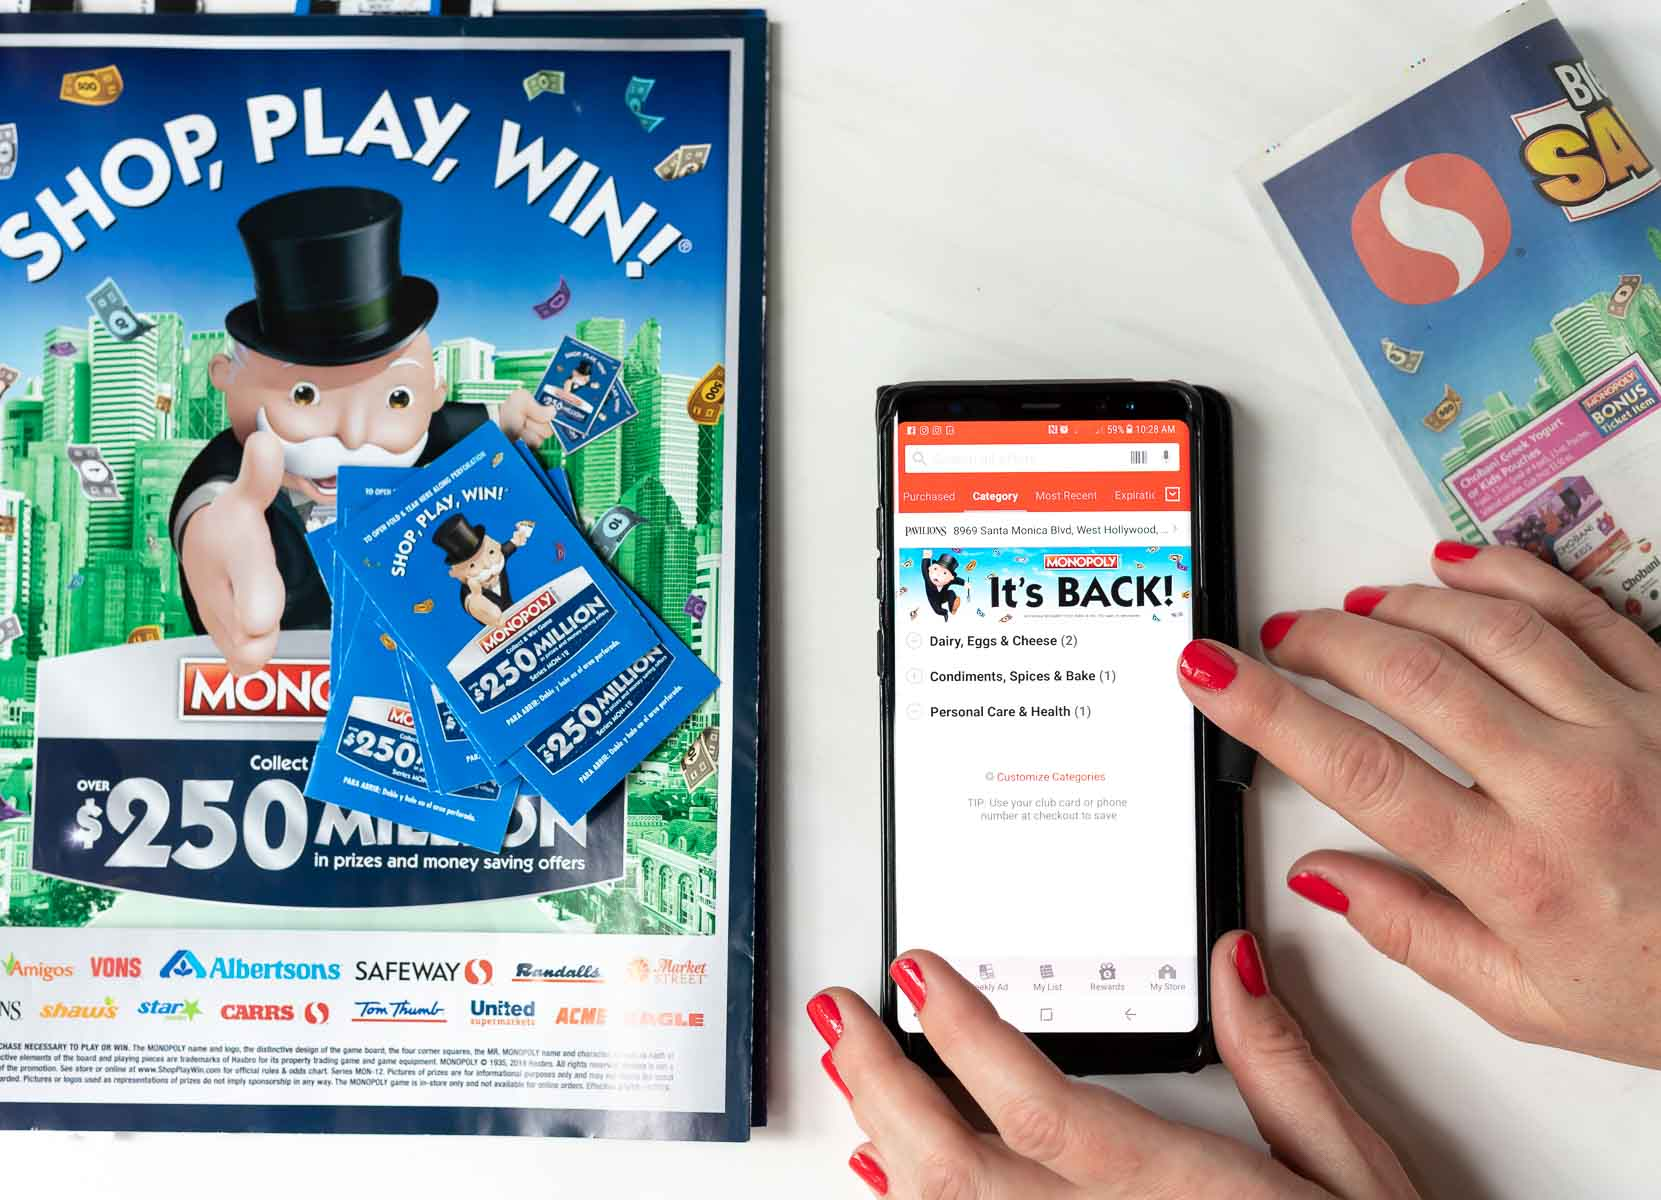 safeway ad next to smart phone with safeway savings app